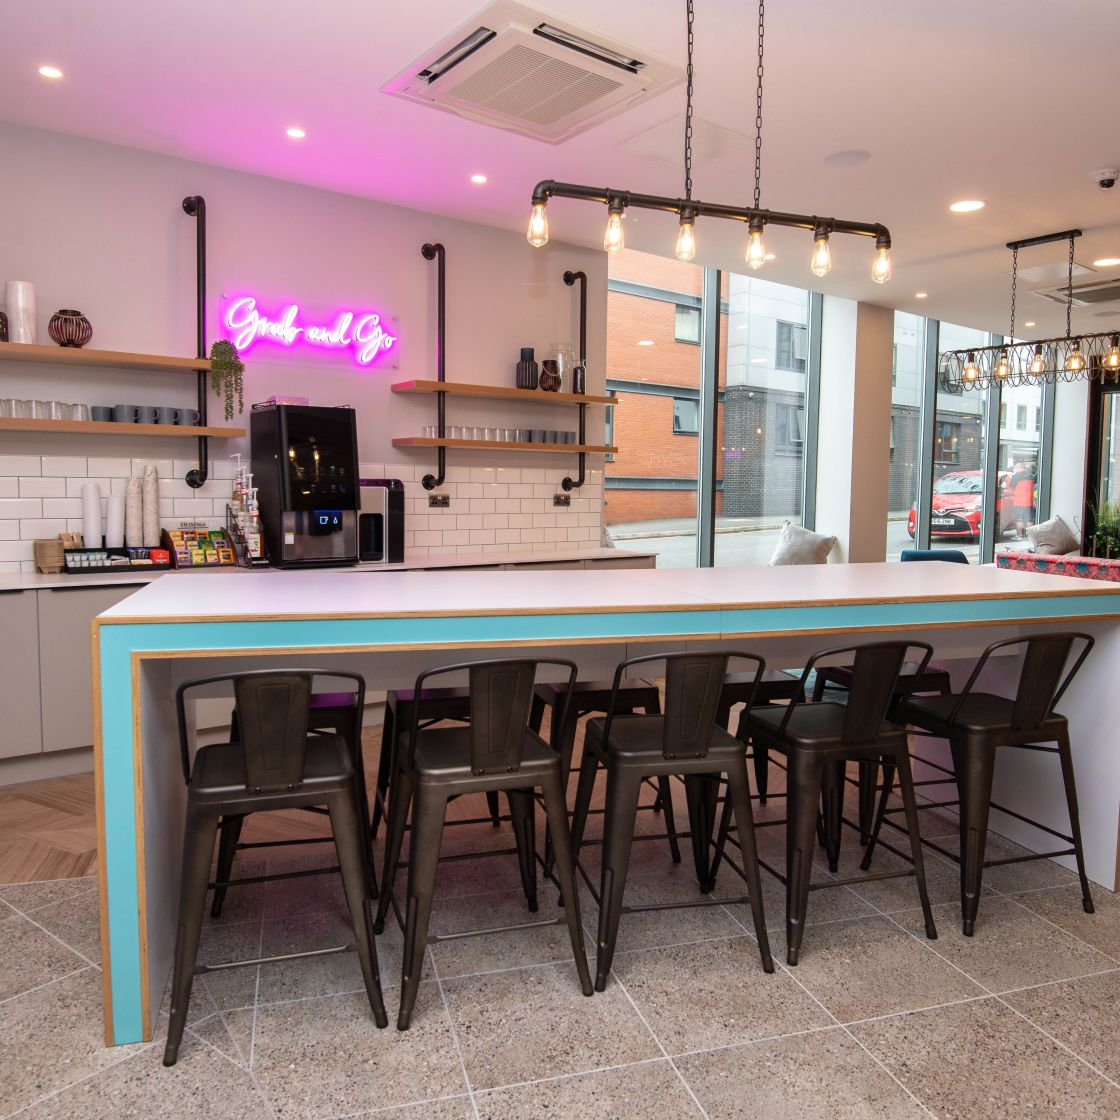 Grab and Go station with 24 hour coffee machine at IconInc, The Edge. Student Accommodation in Leeds